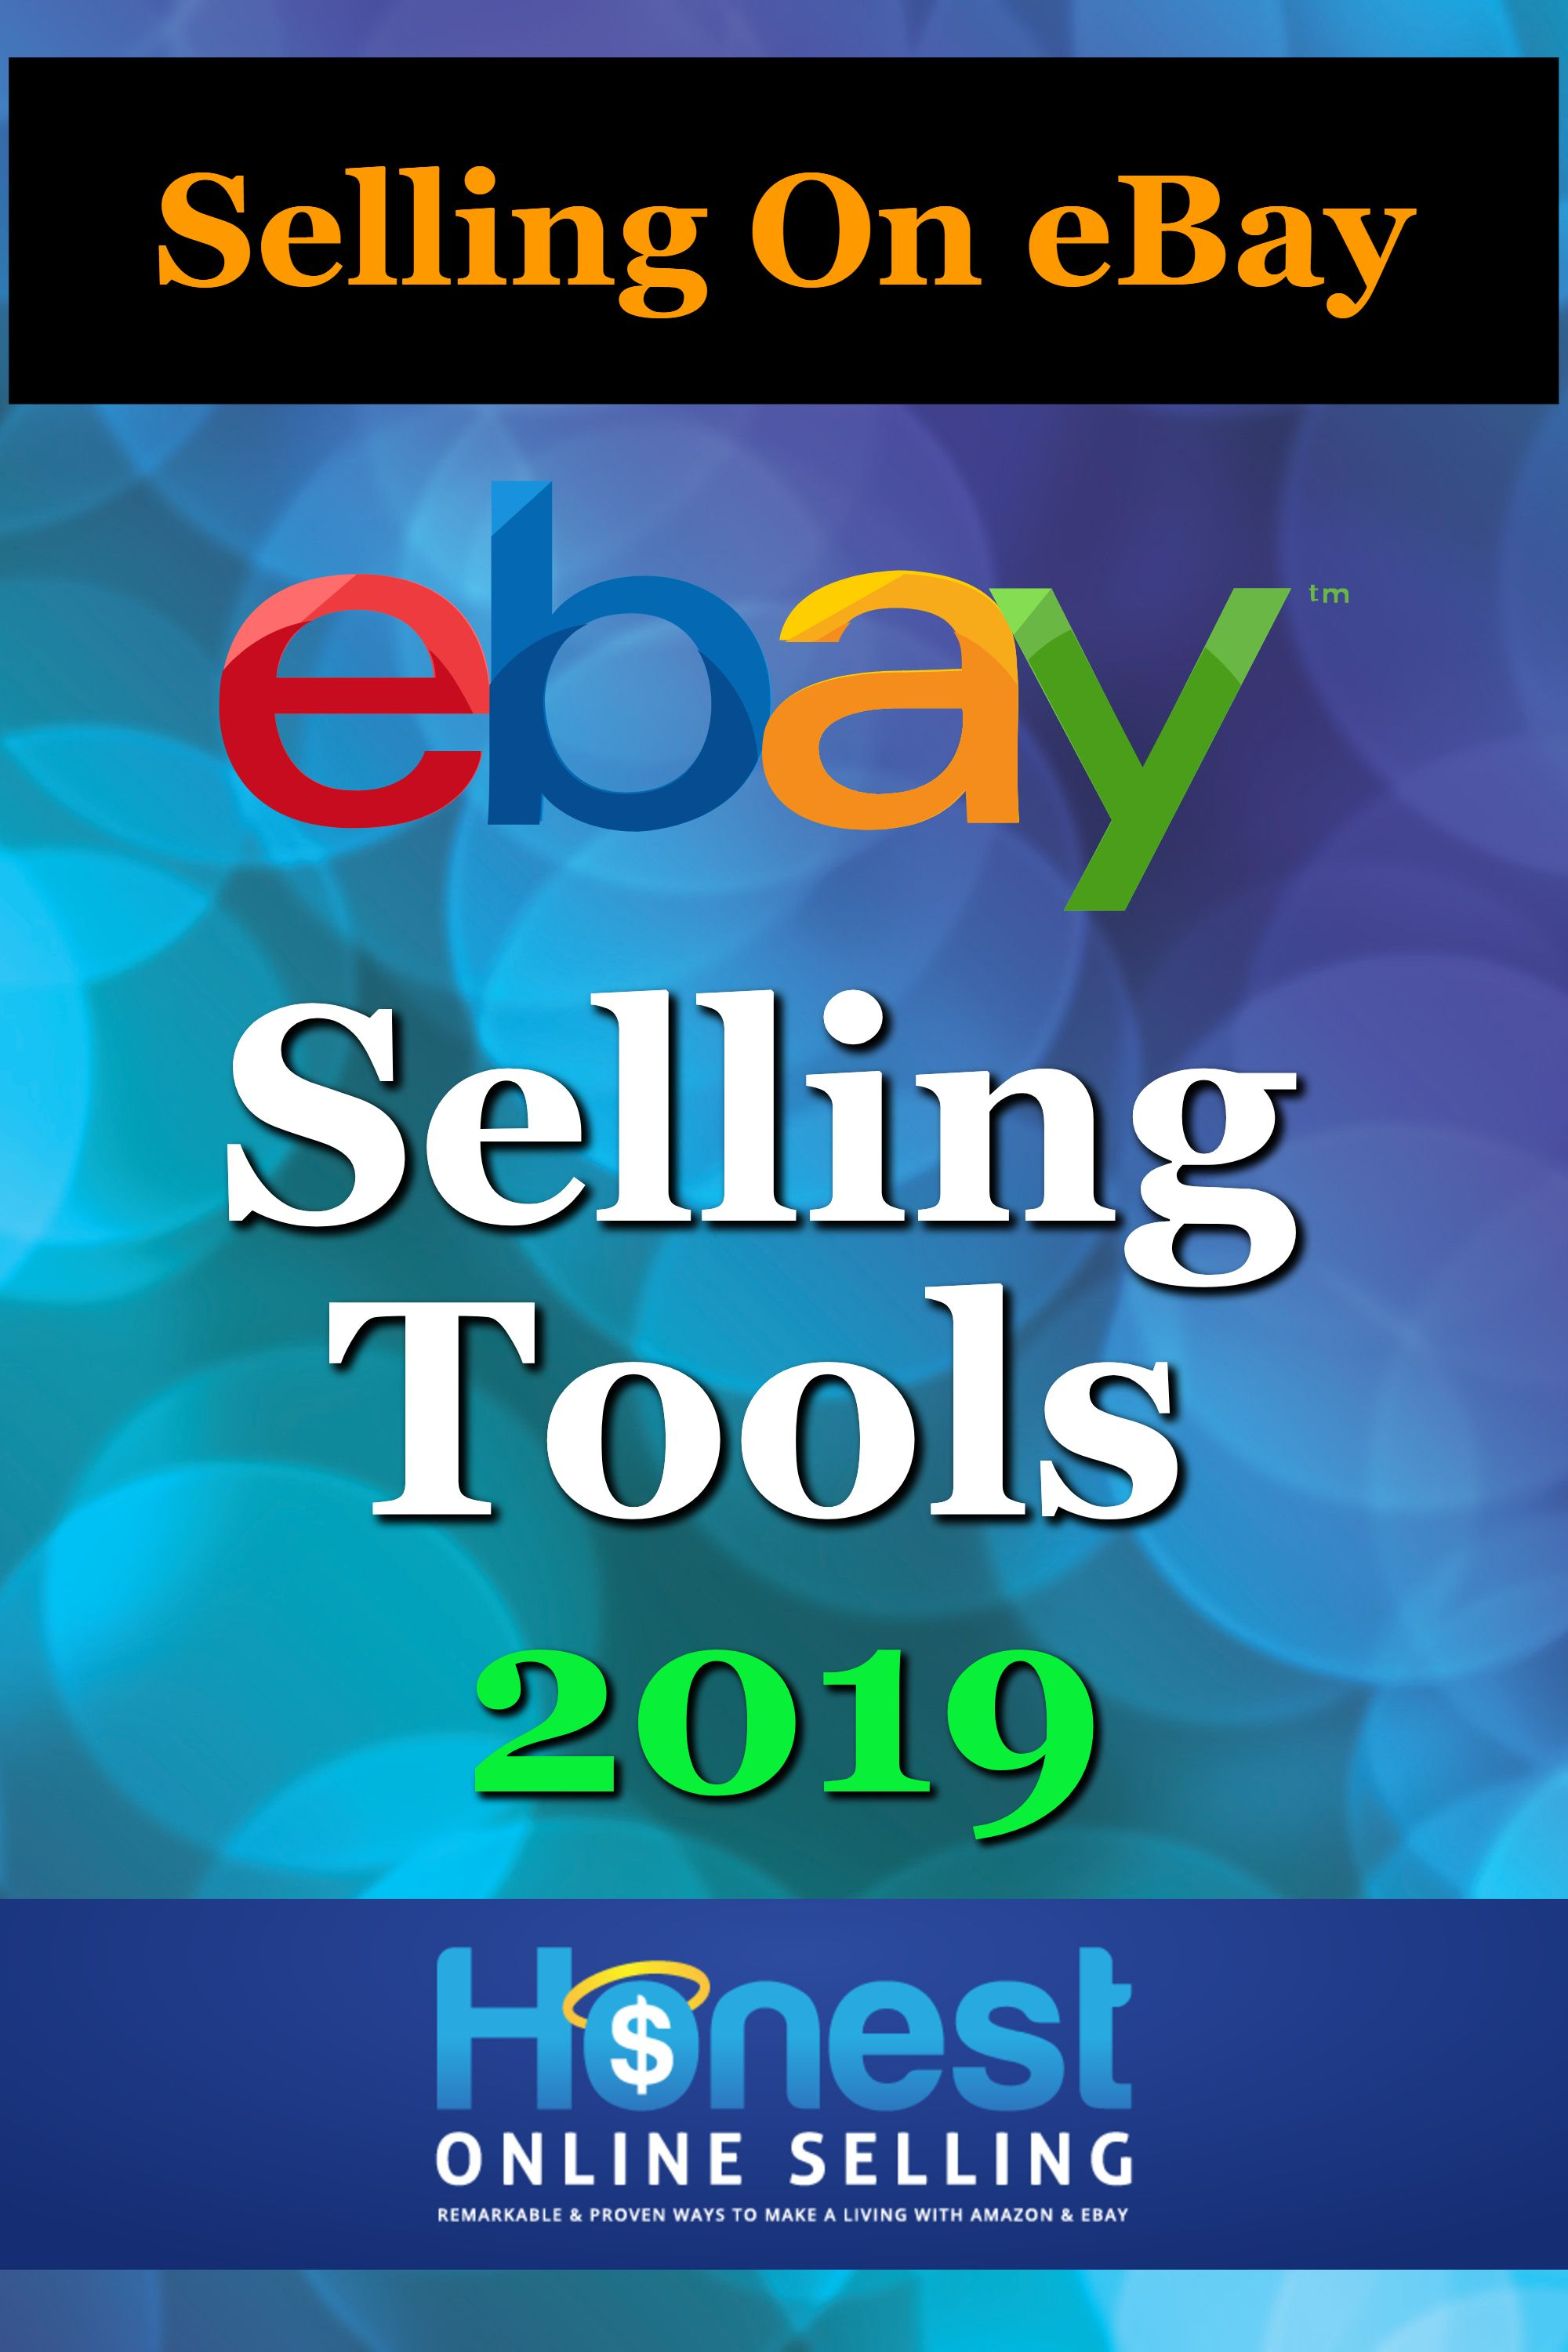 Amazon Seller Help Ebay Seller Resources In 2020 Making Money On Ebay Business Motivation Ebay Business Ideas